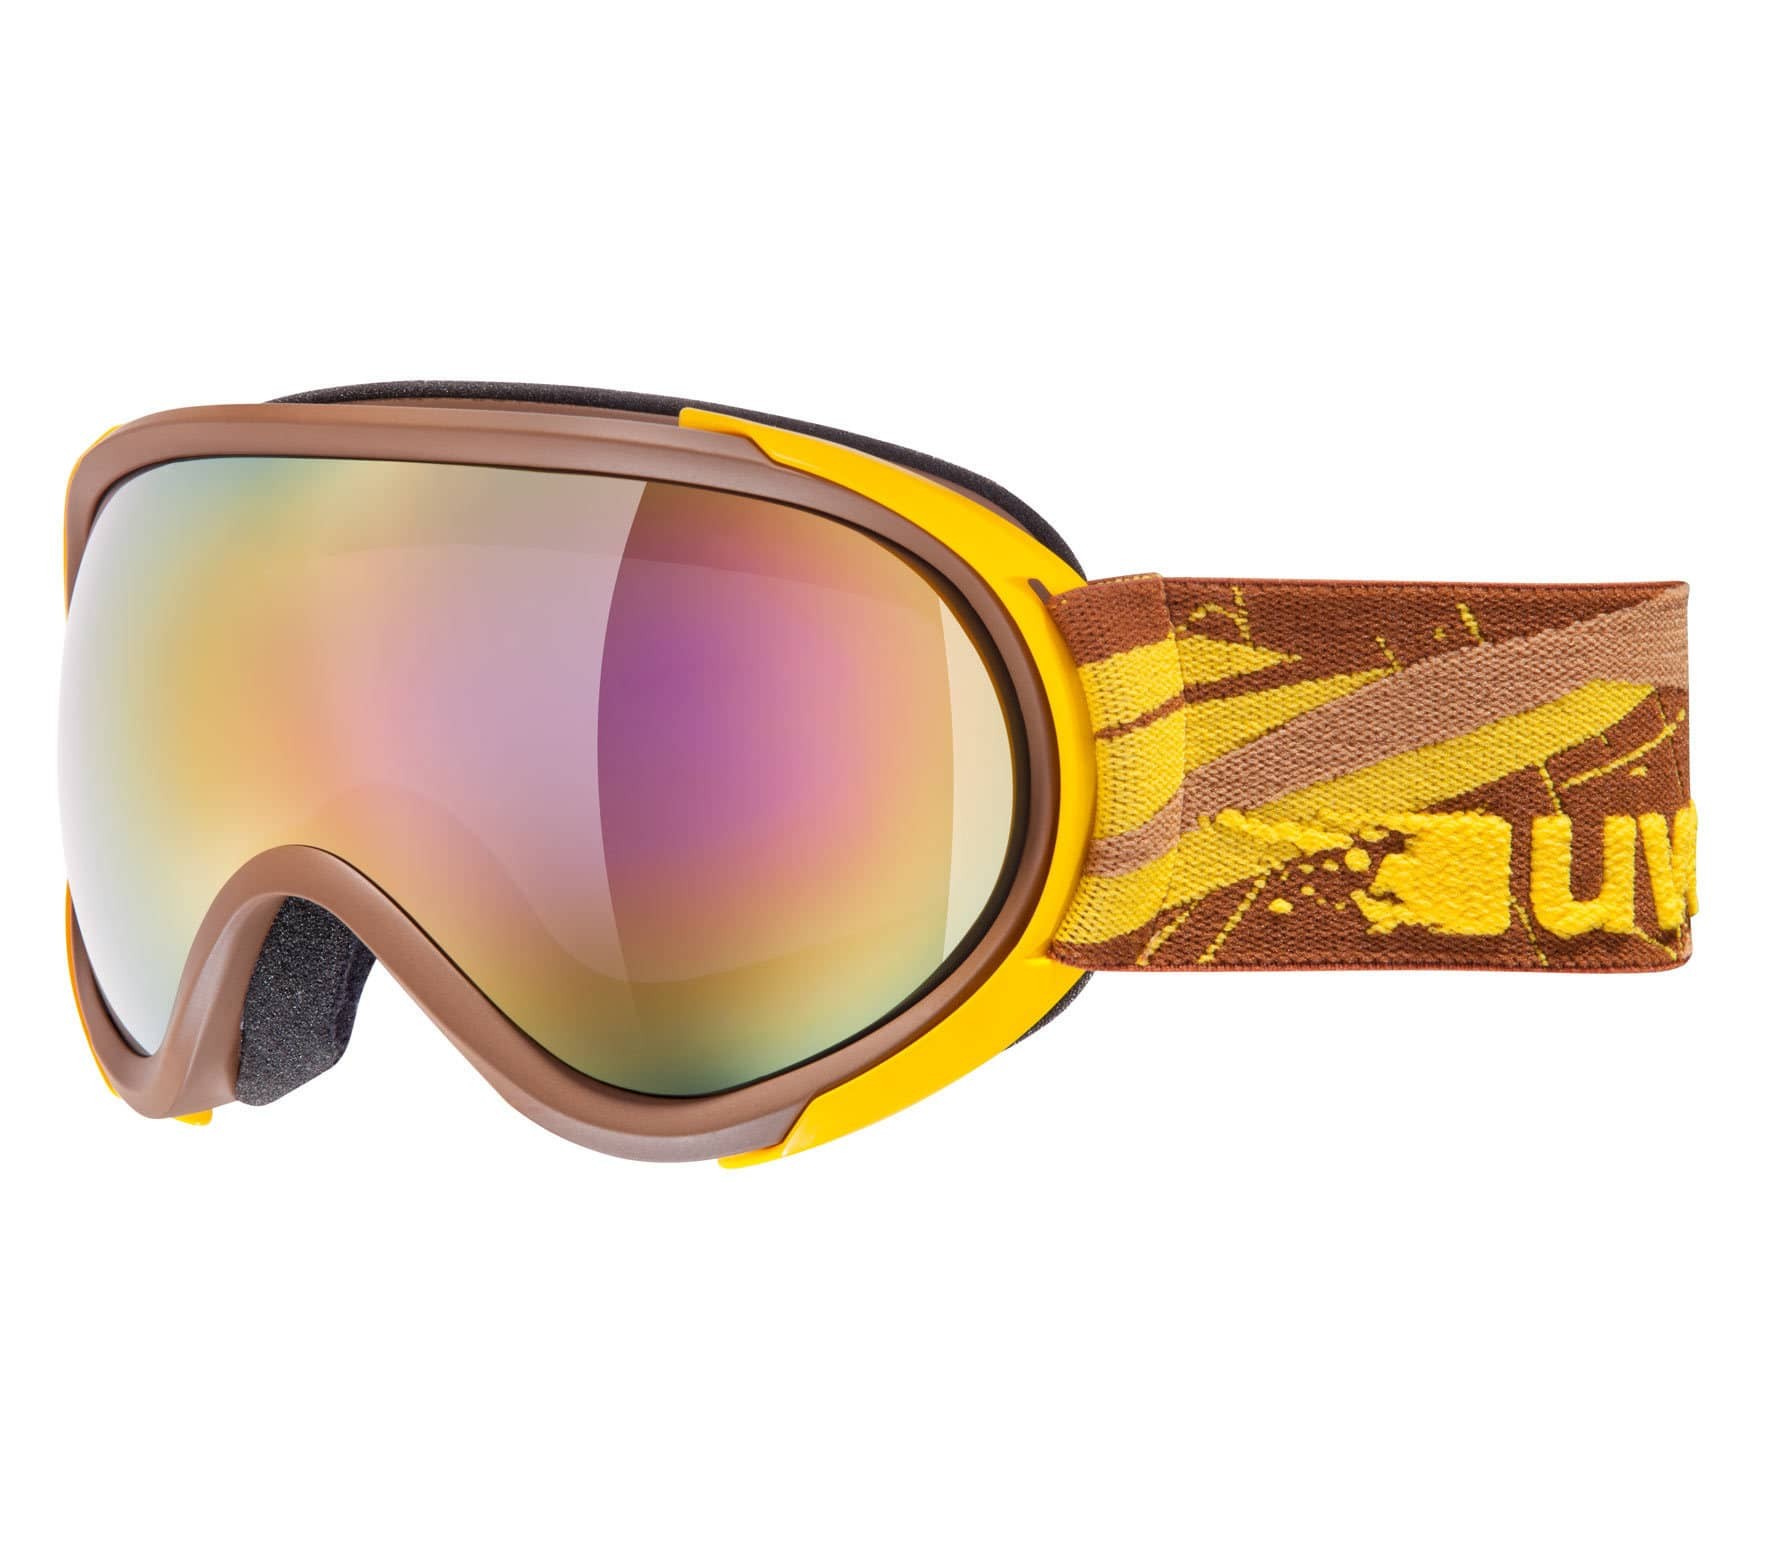 0611b5913ba Uvex - G.gl 7 men s skis- and Snowboardbrille (brown yellow) - buy ...